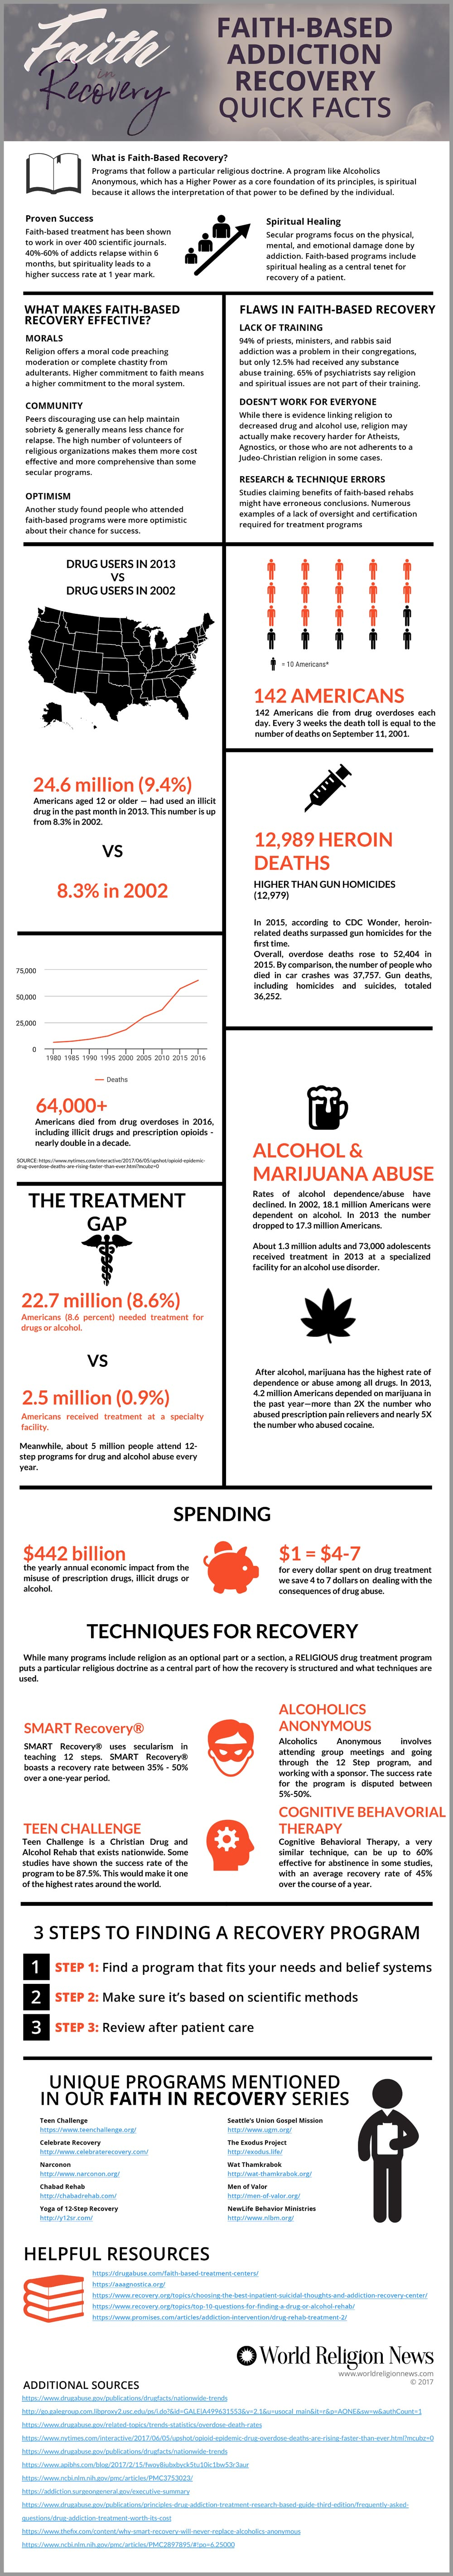 Faith in Recovery: Faith-Based Addiction Recovery Quick Facts [Infographic]